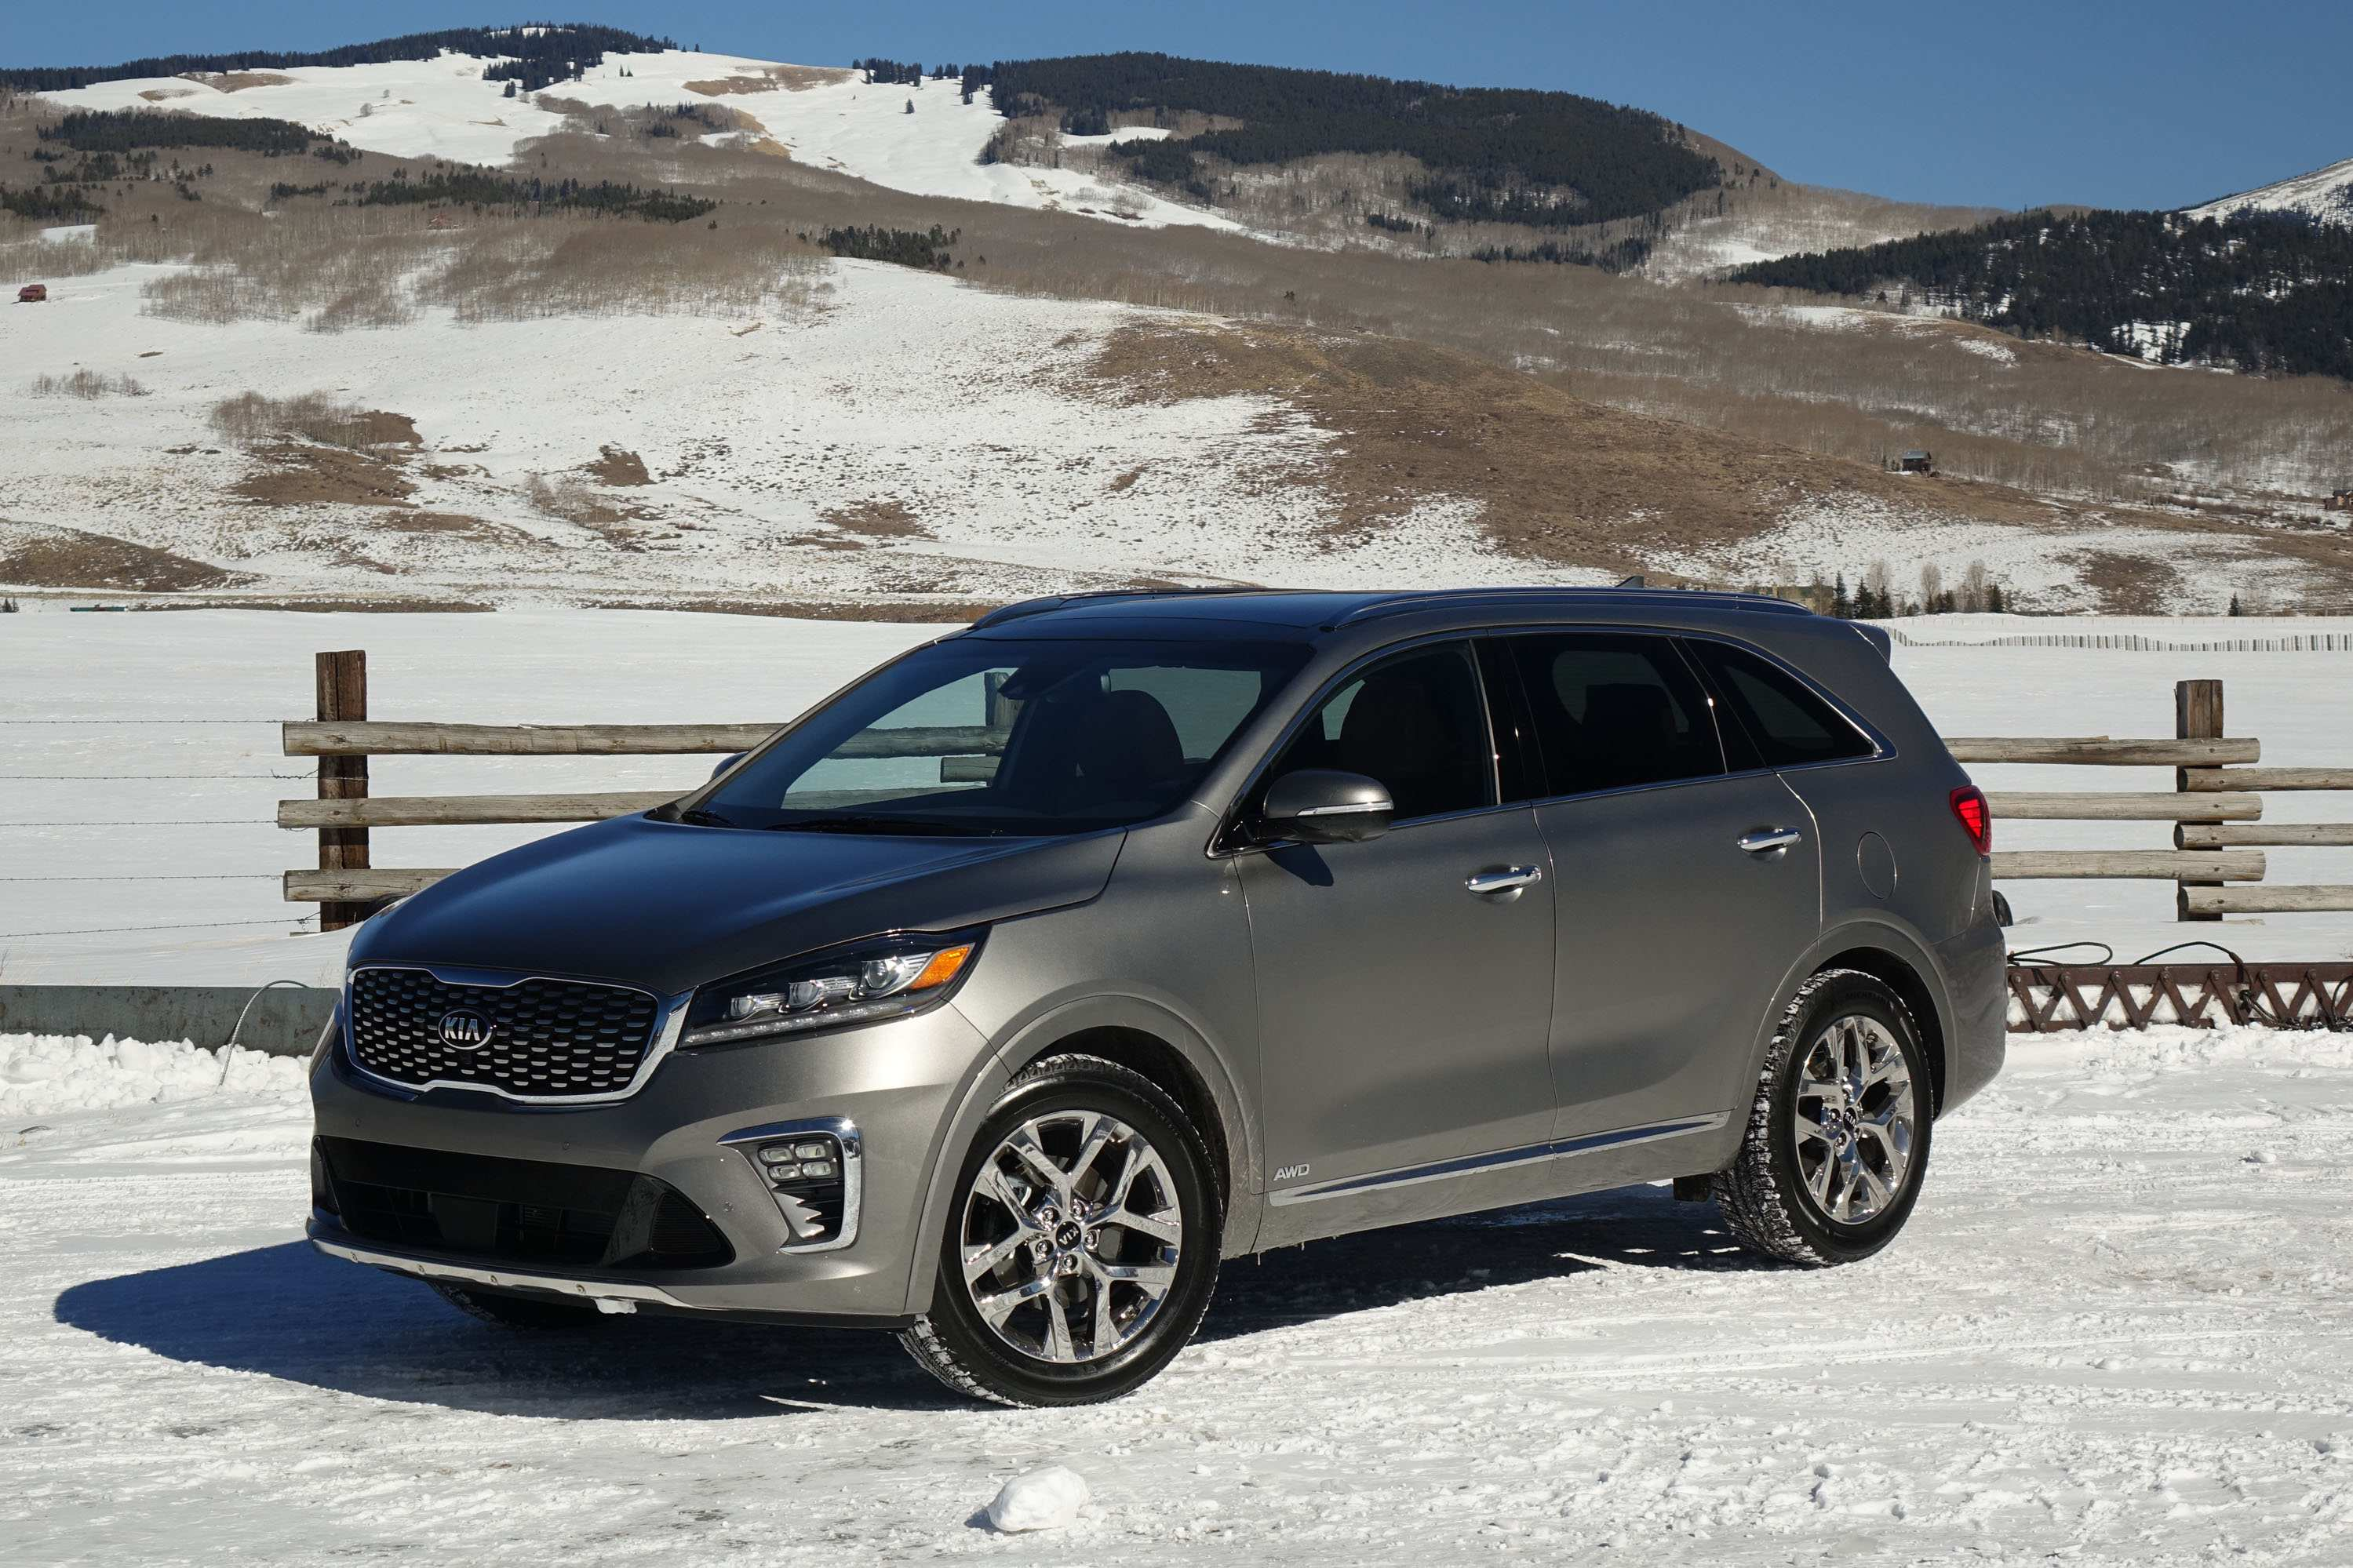 38 The Kia Sorento 2019 Video Picture